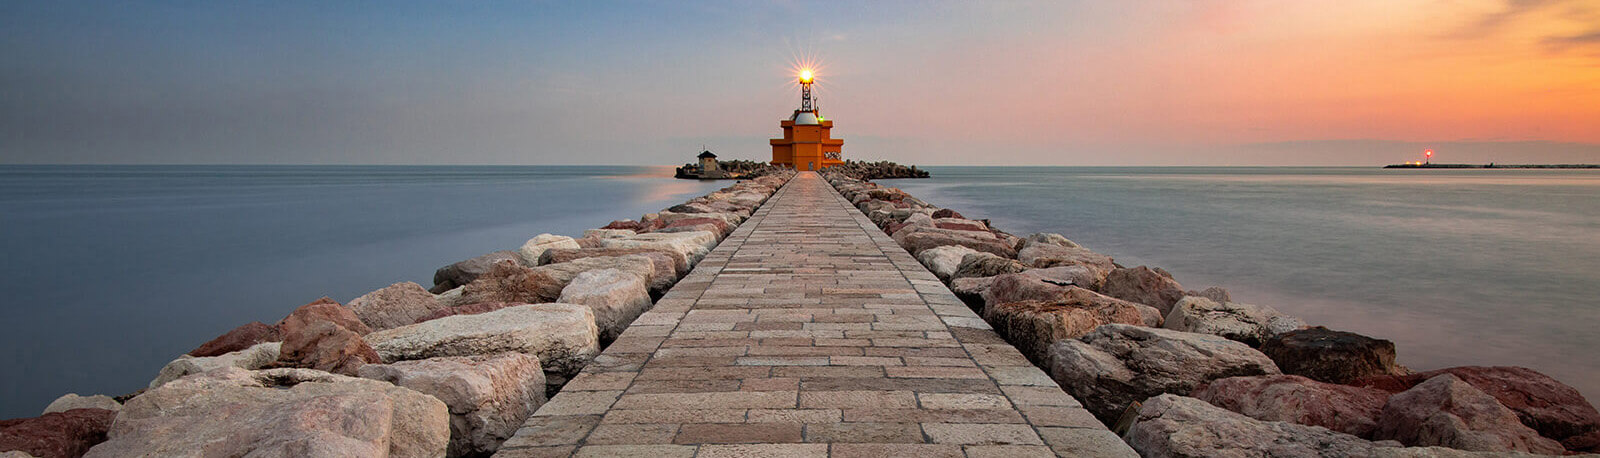 stone pier with lighthouse at the end